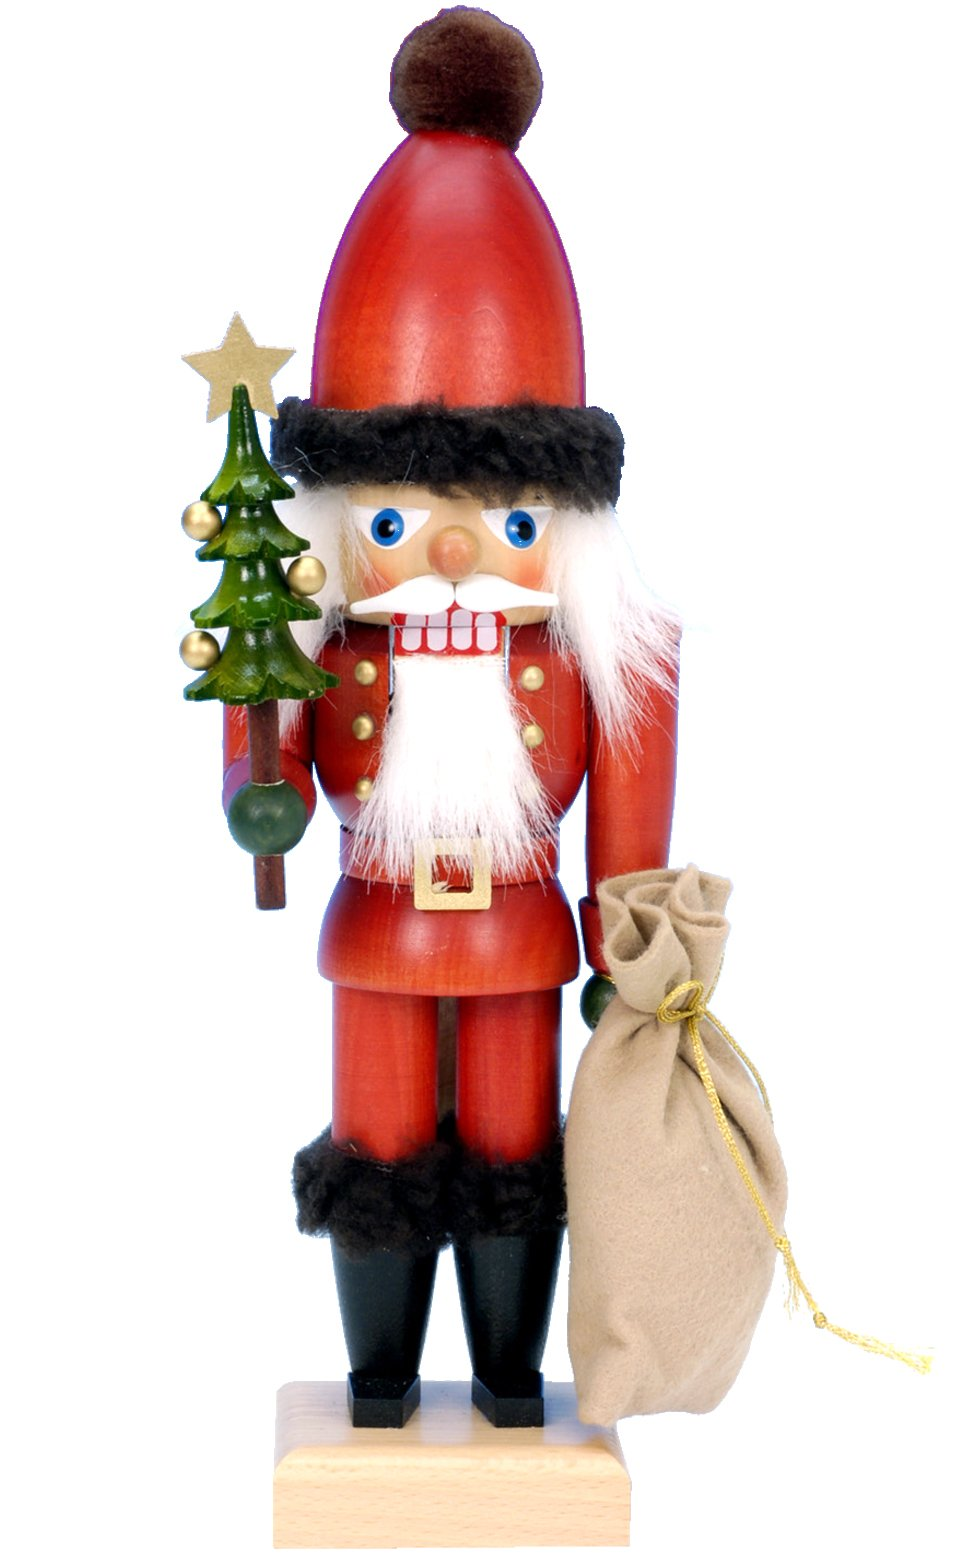 Alexander Taron Importer 32-643 - Christian Ulbricht Nutcracker - Santa with Tree and Sack - 12'''' H x 4'''' W x 4'''' D